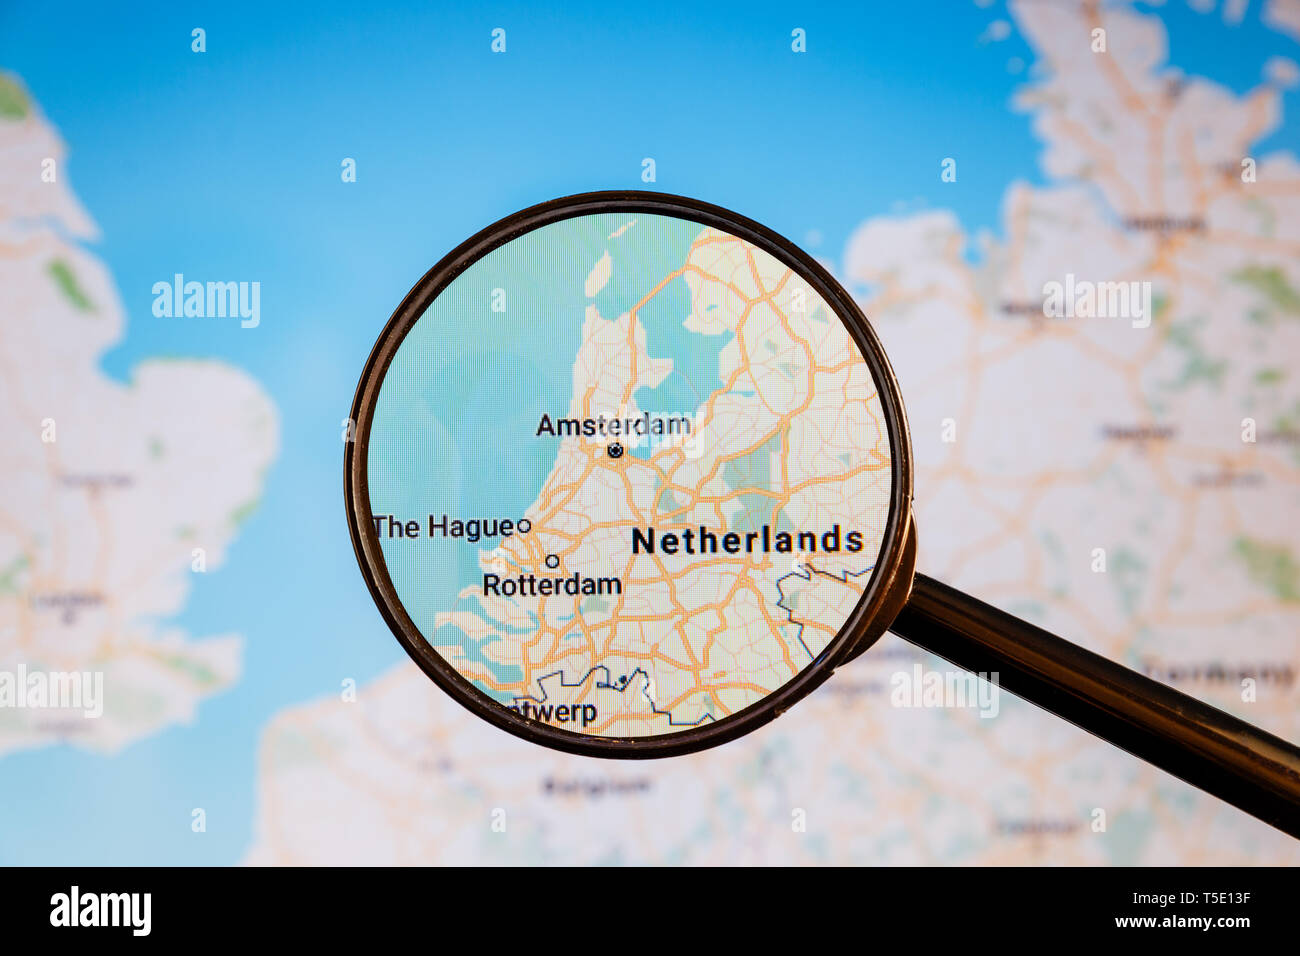 Amsterdam, Netherlands. Political map. City visualization illustrative concept on display screen through magnifying glass. - Stock Image